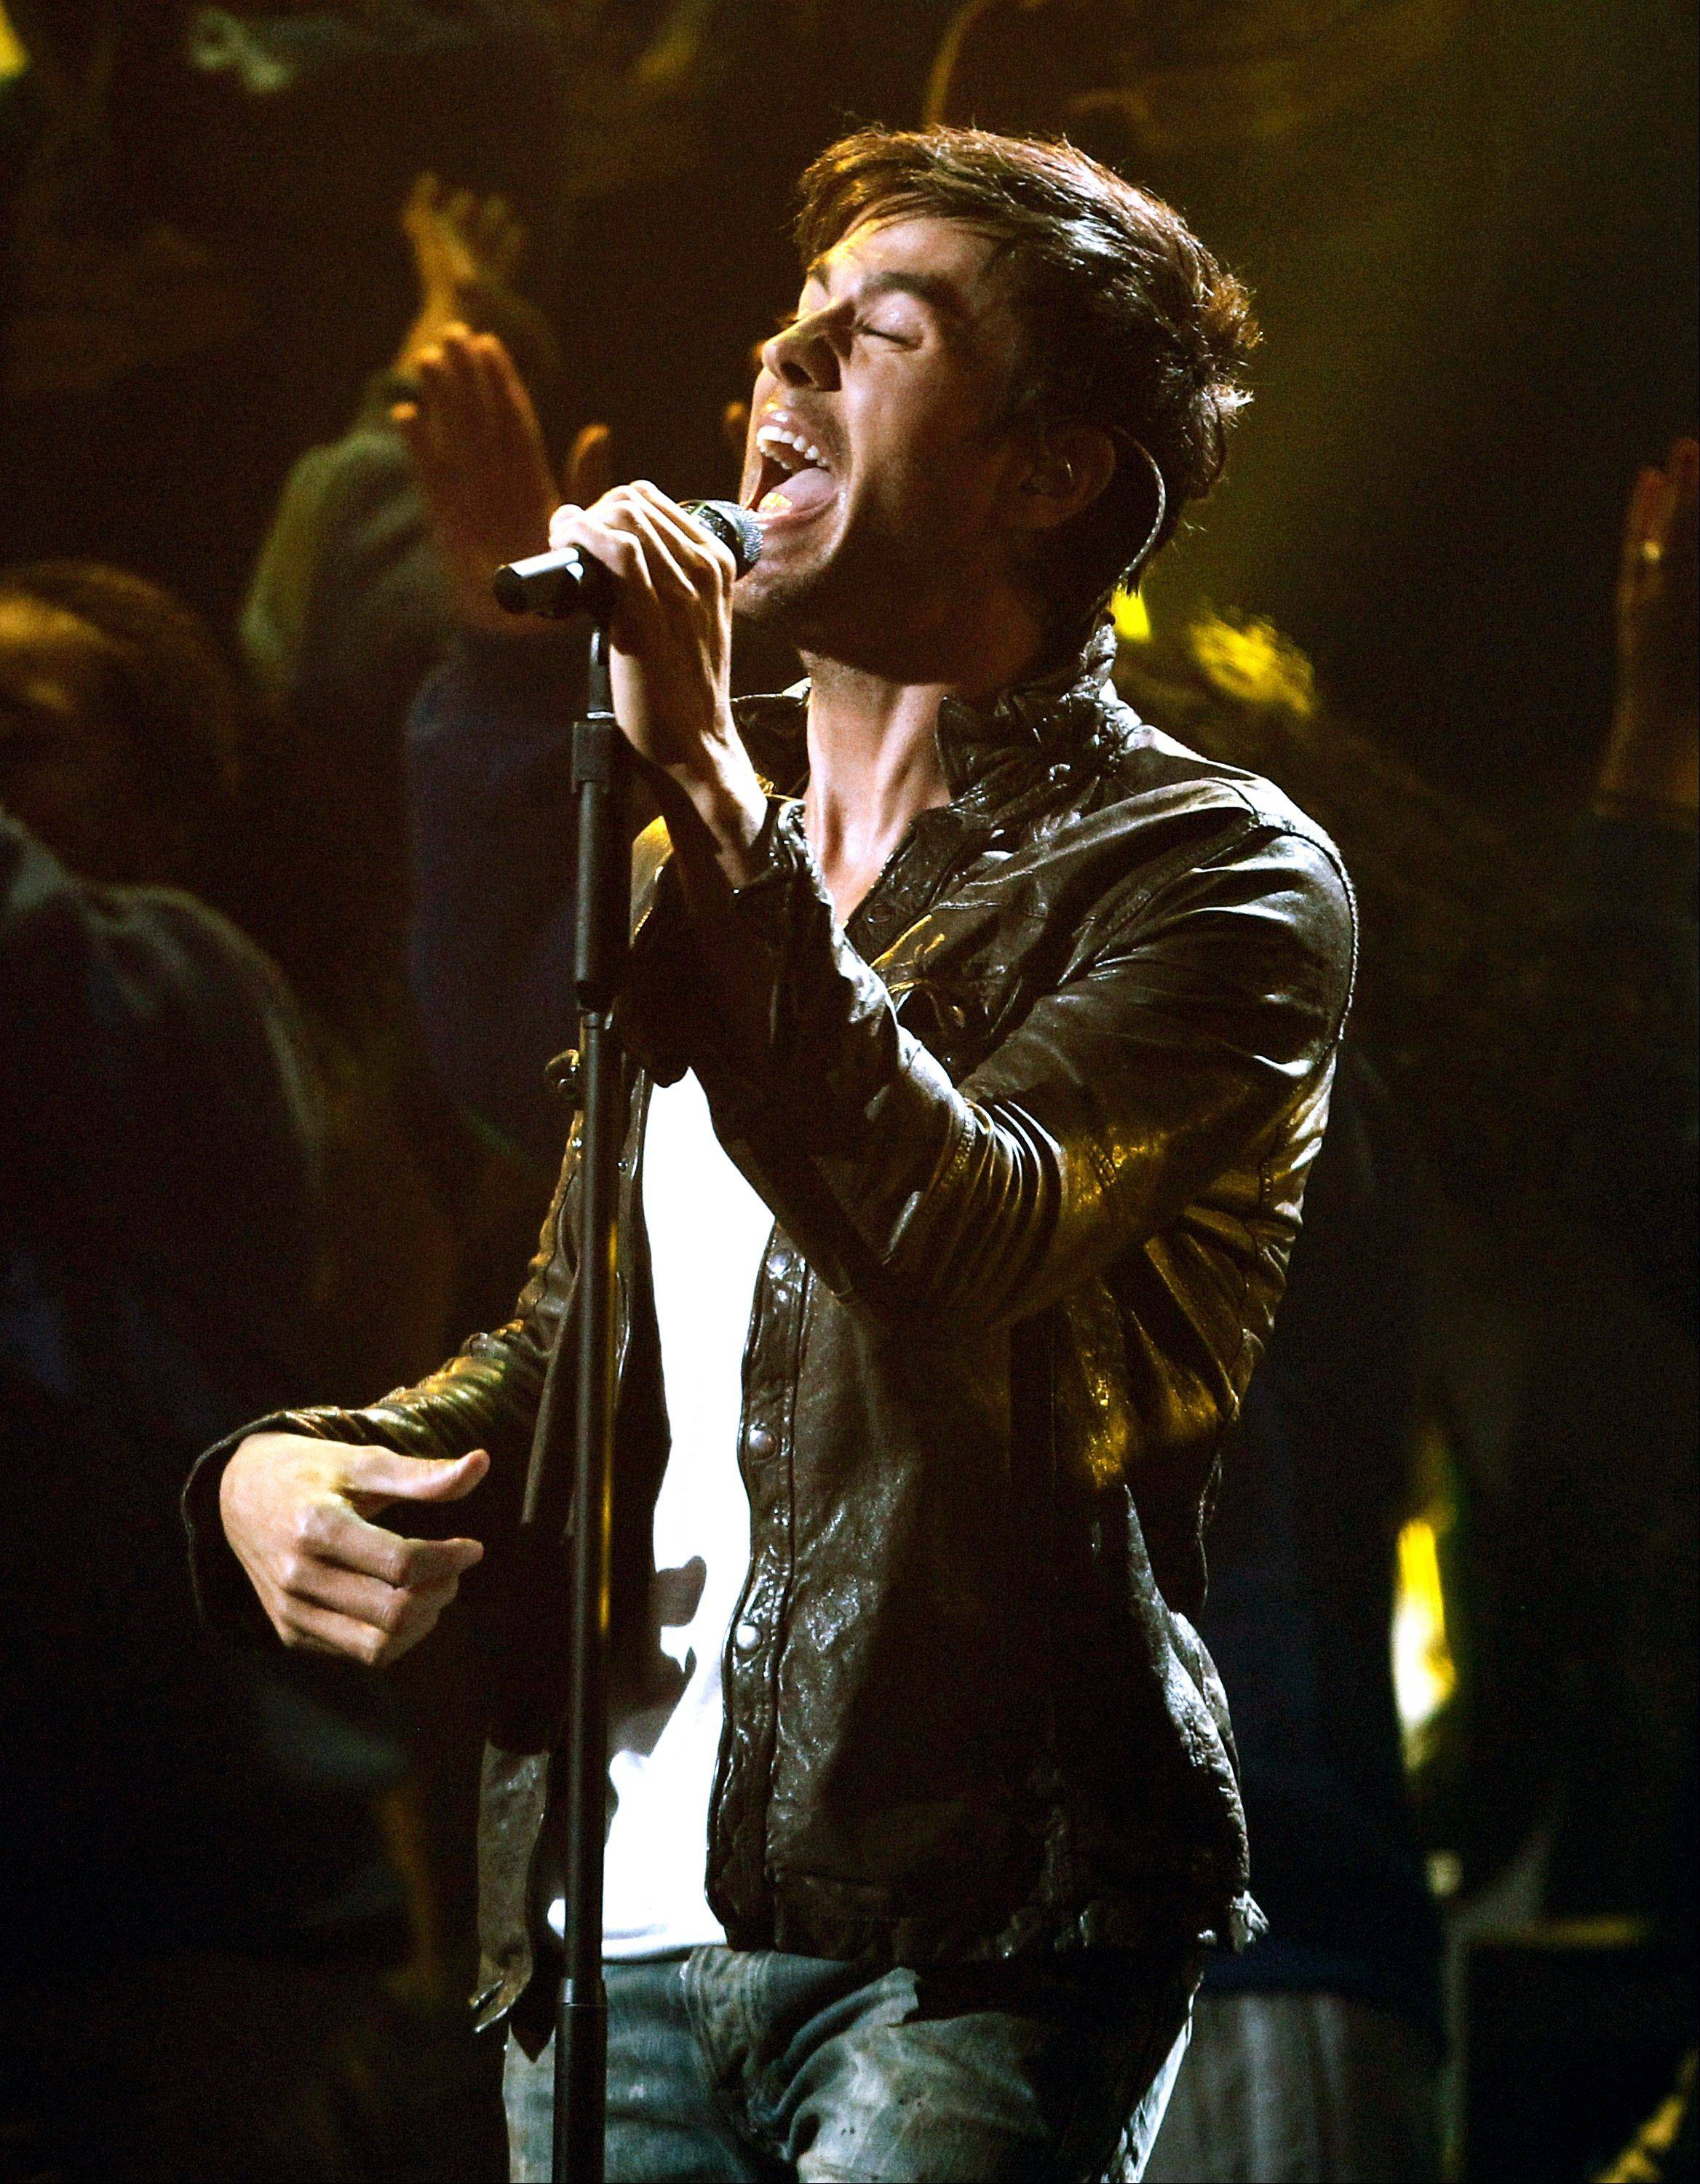 Enrique Iglesias performs at the 39th Annual American Music Awards on Sunday, Nov. 20, 2011, in Los Angeles.